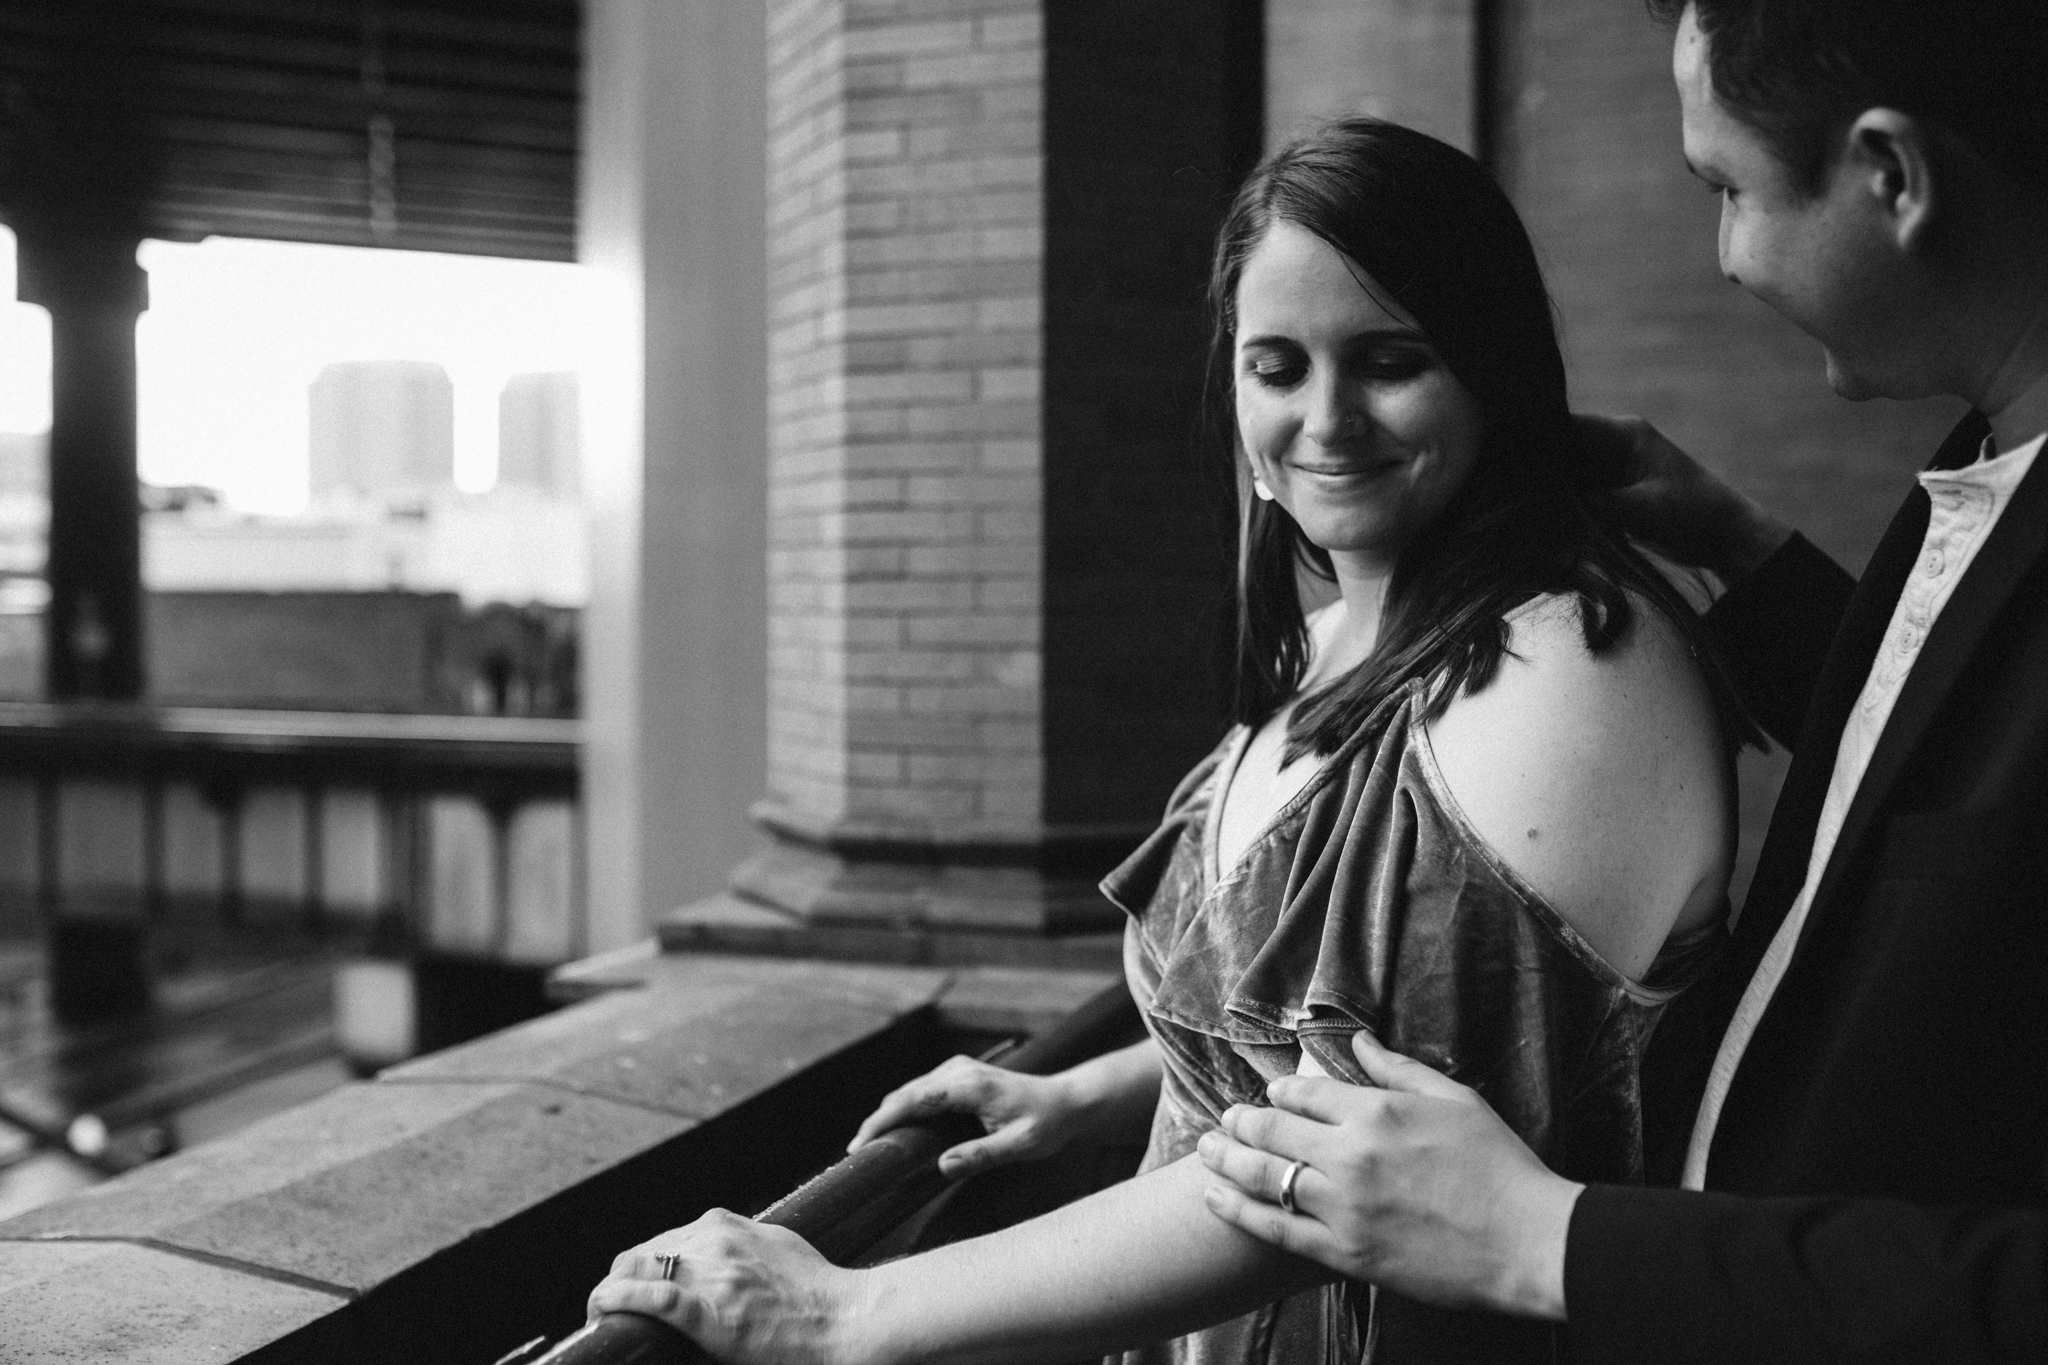 rachel_alex_richmond_engagement_session_mainstreetstation_rebeccaburtphotography-42.jpg